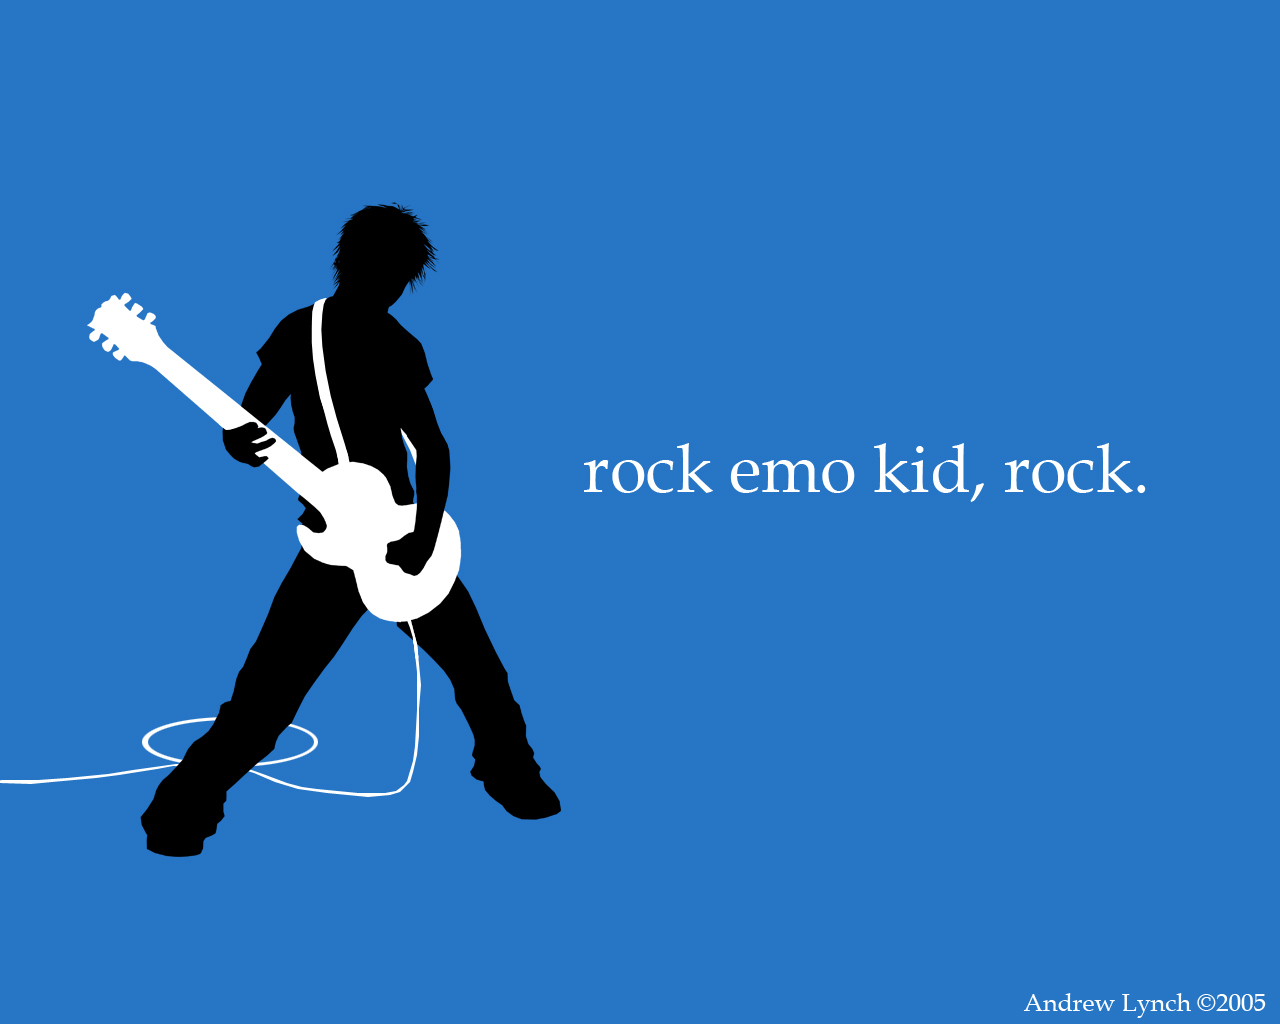 Cool Emo Background Wallpapers   500 Collection HD Wallpaper 1280x1024